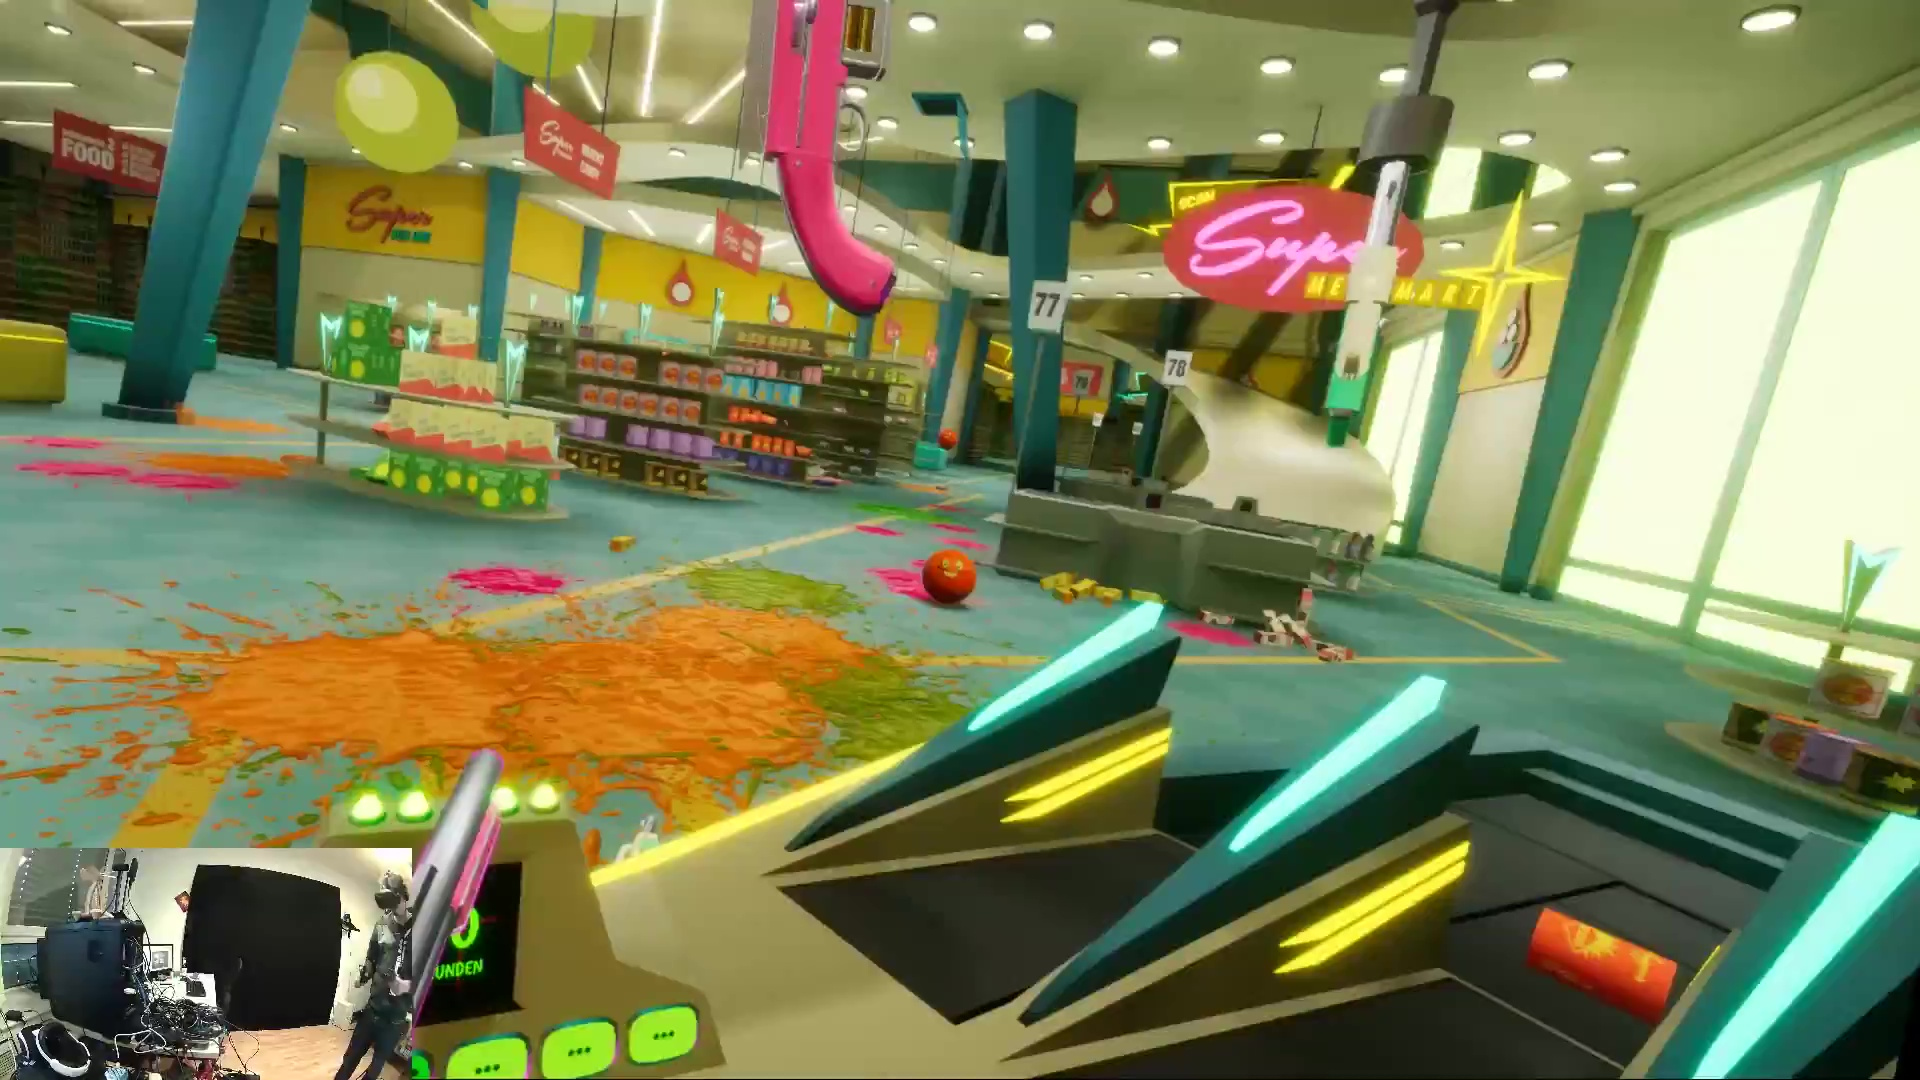 Shooty-Fruity-Gameplay-Oculus-Rift-HTC-Vive-PlayStationVR